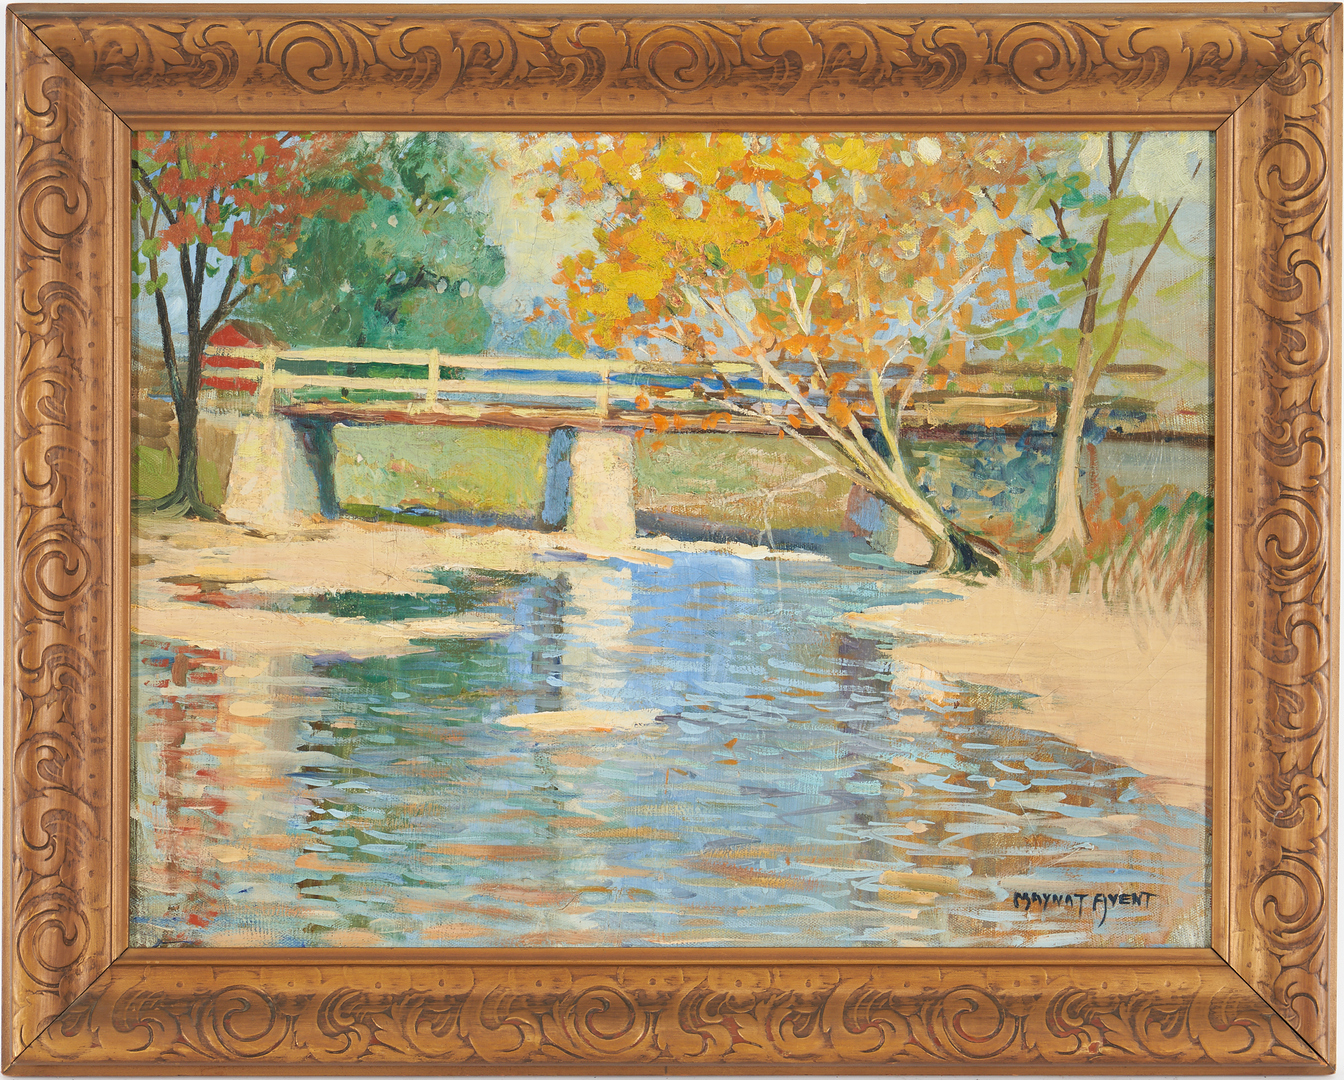 Lot 190: Mayna Treanor Avent O/C, Tennessee Landscape Painting